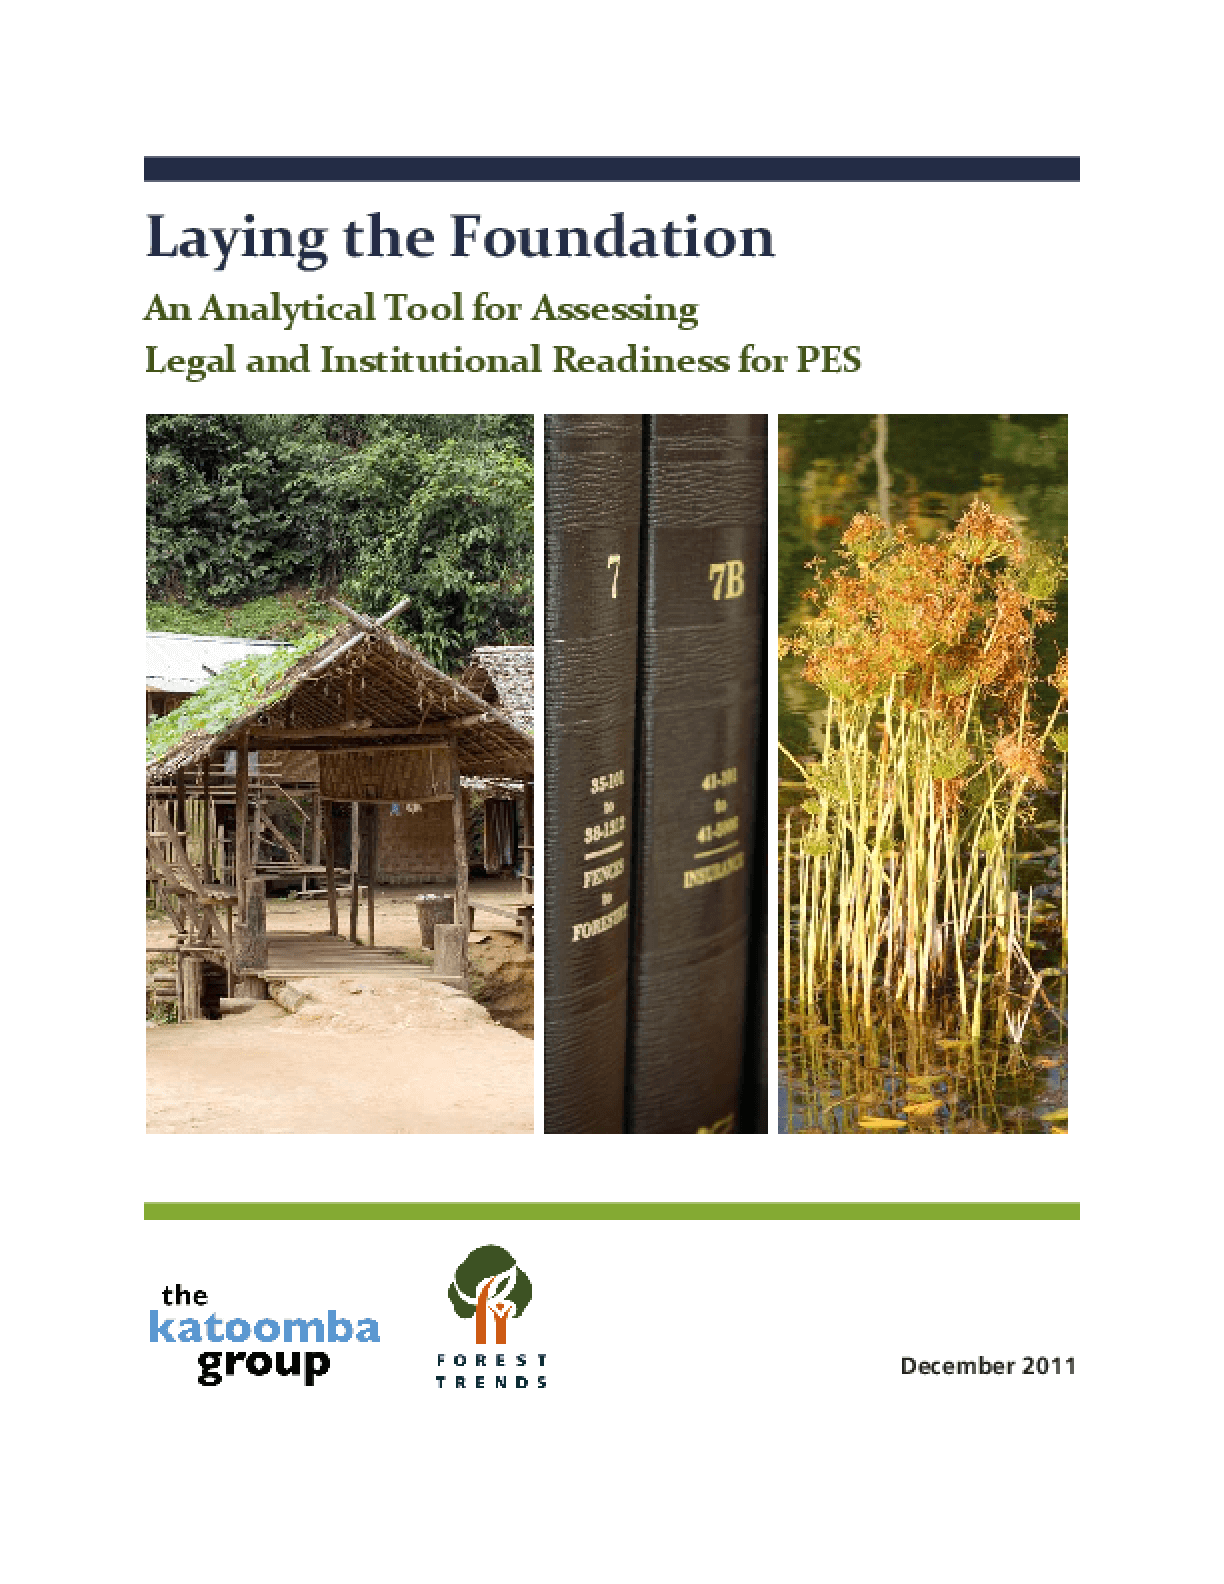 Laying the Foundation: An Analytical Tool for Assessing Legal and Institutional Readiness for PES